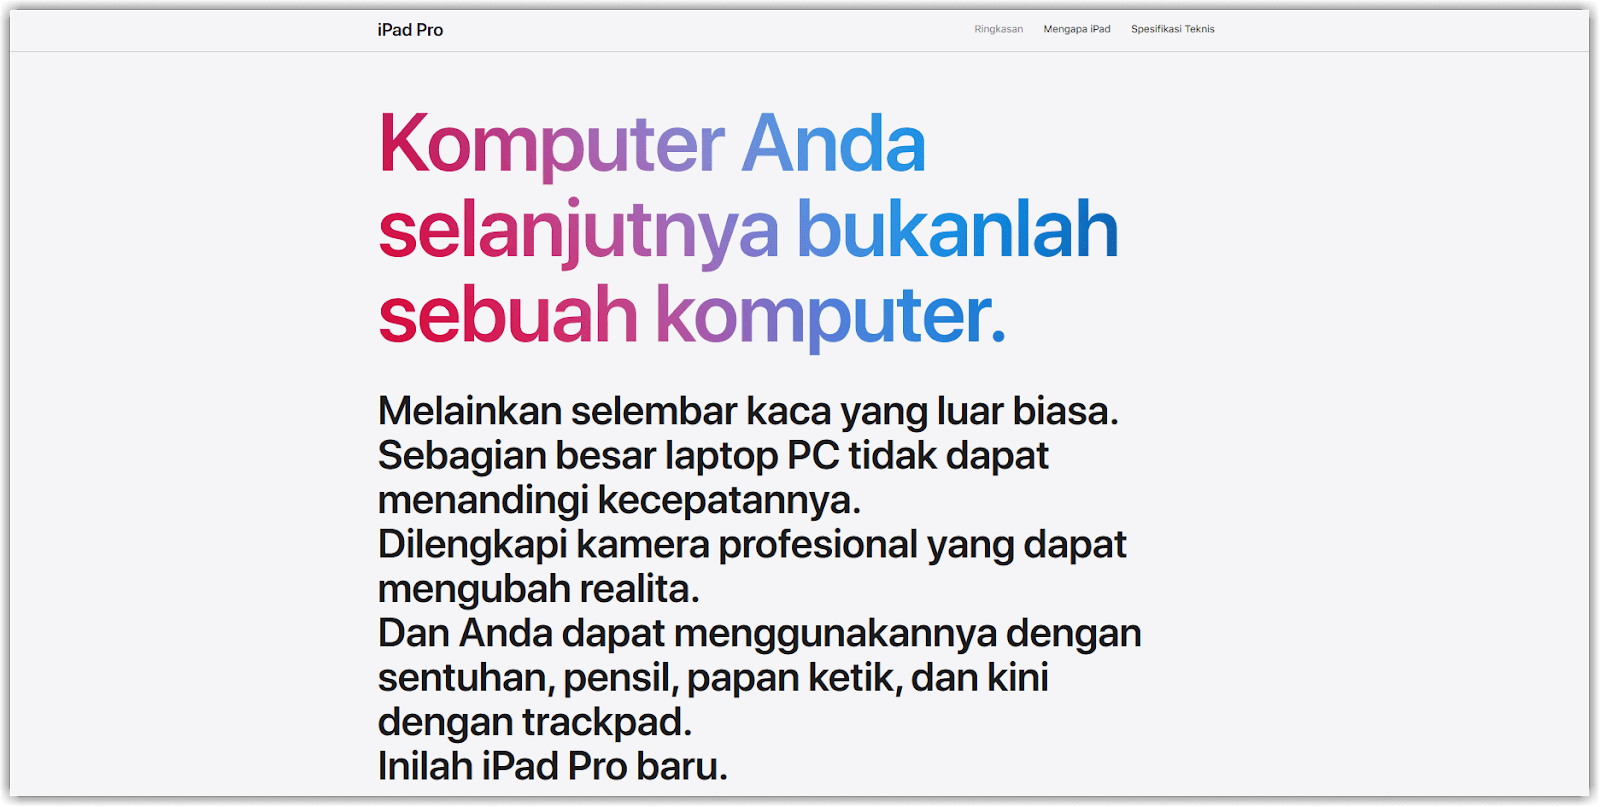 contoh penggunaan copywriting d website Apple Indonesia